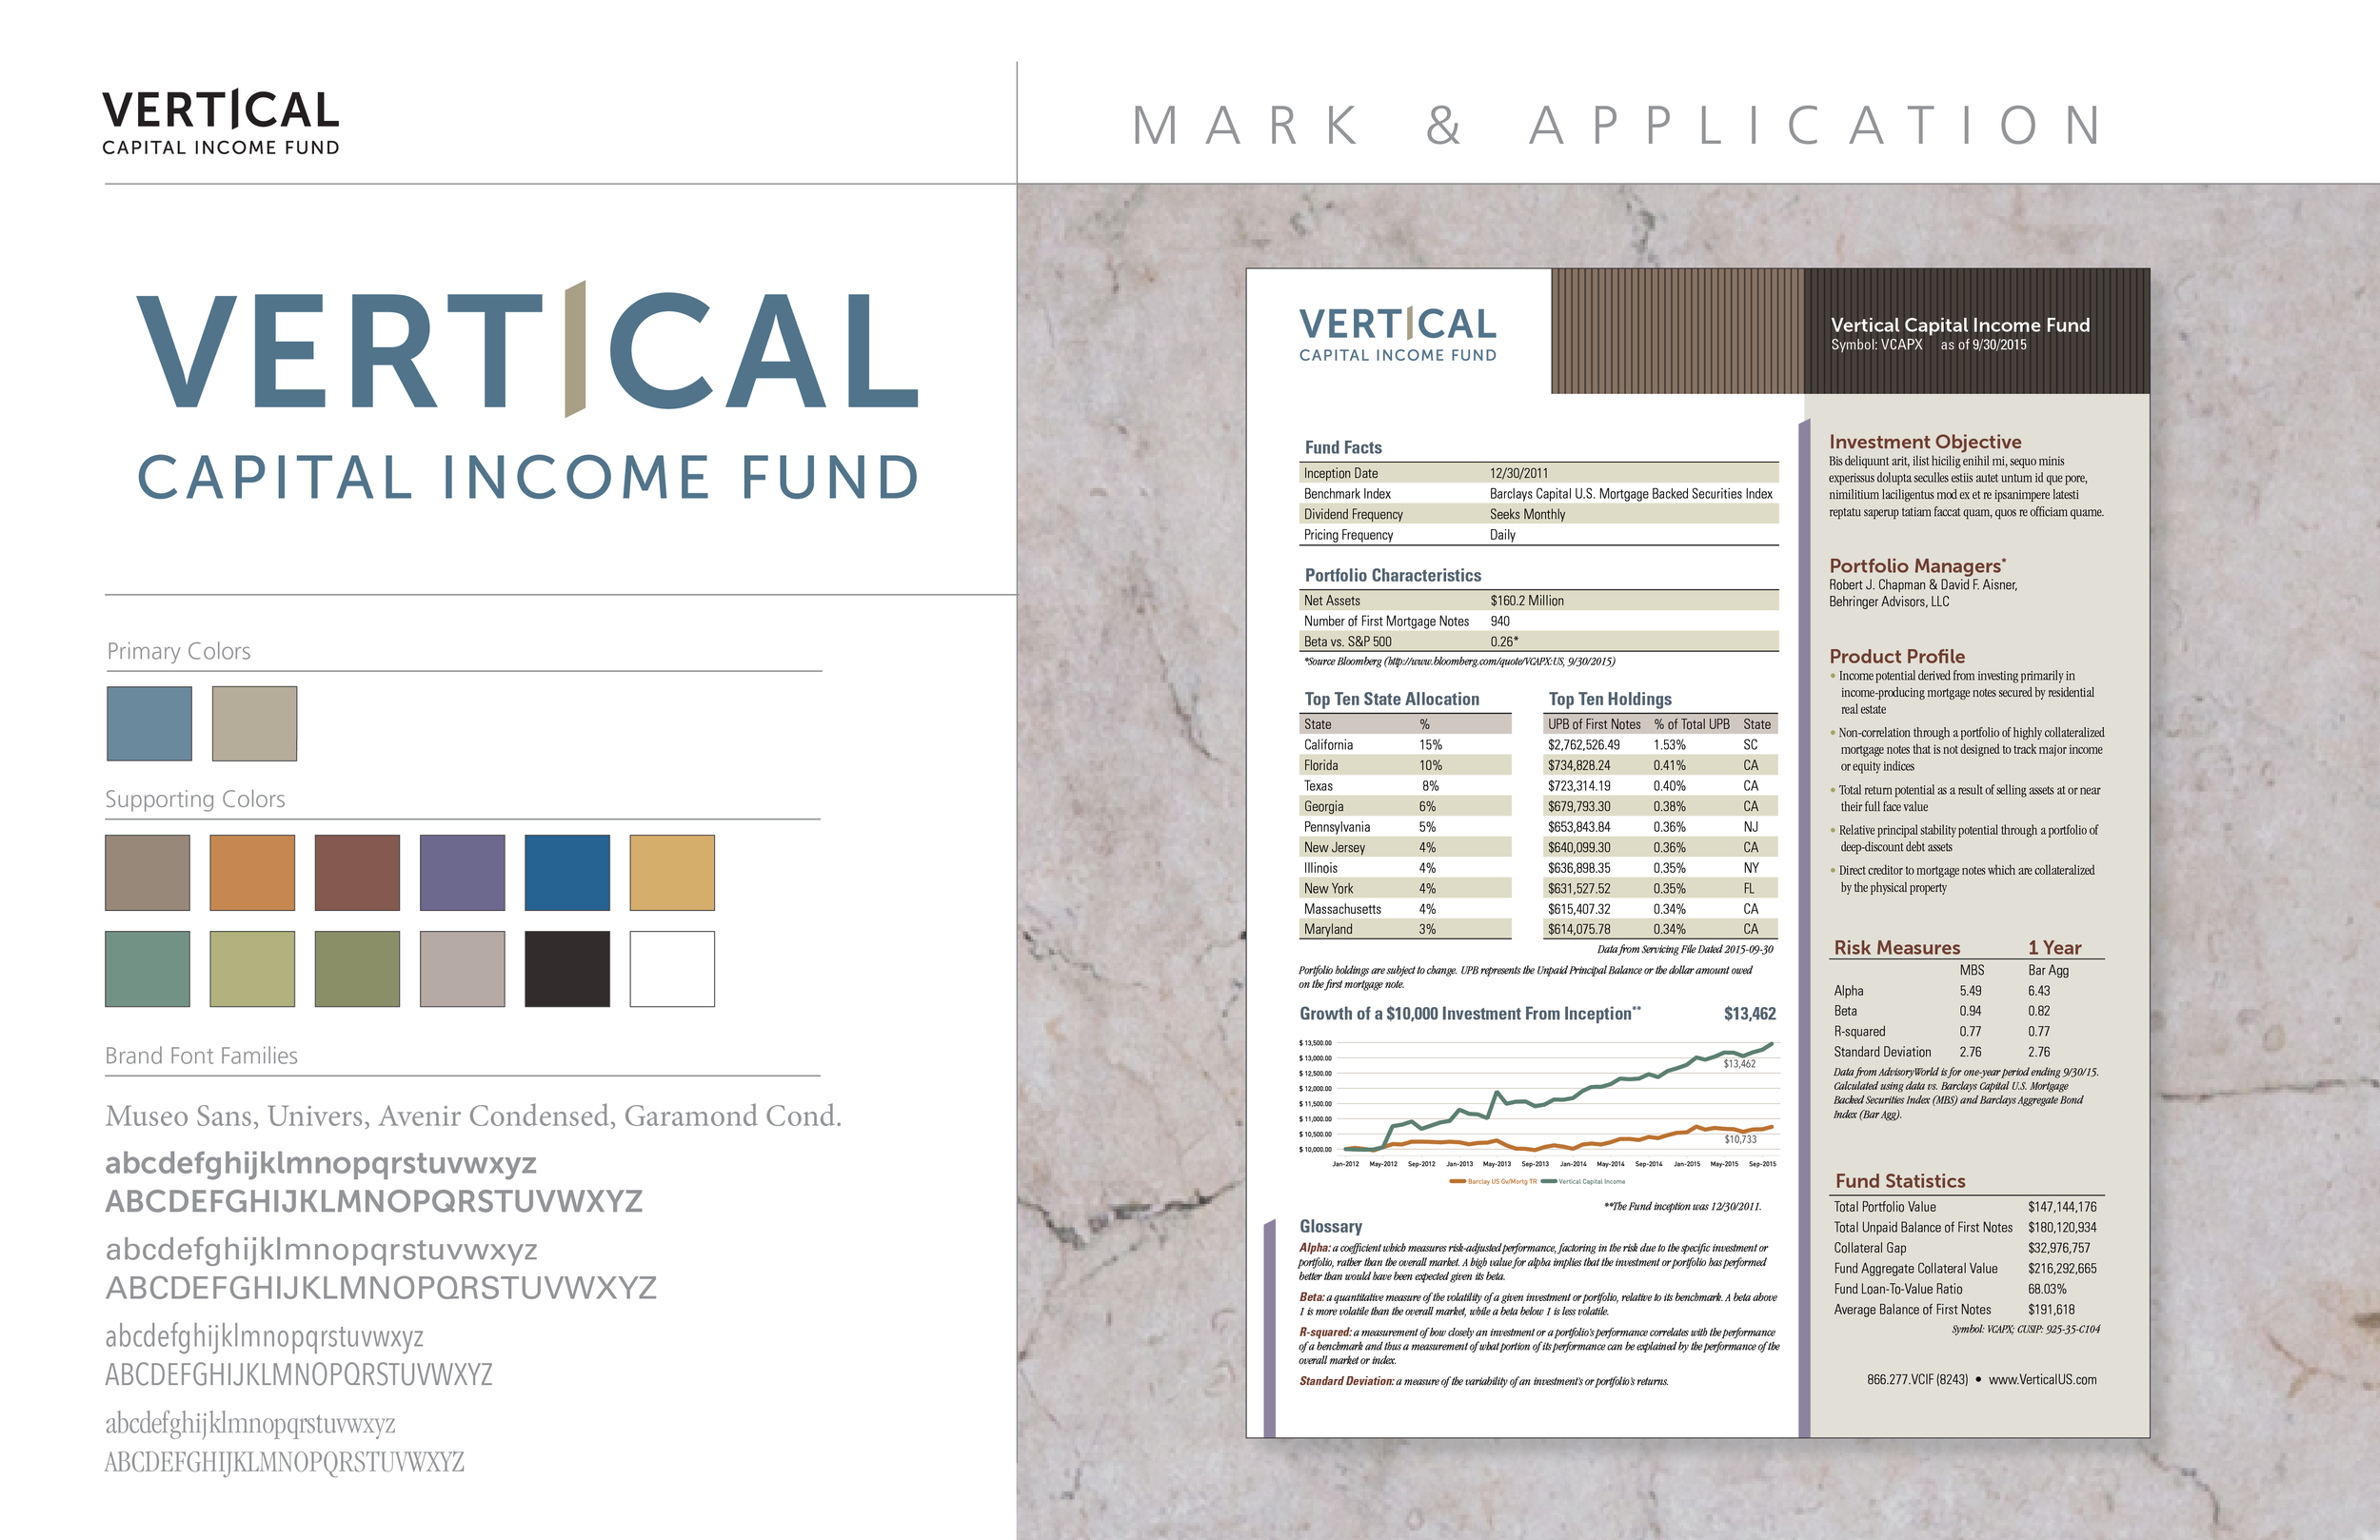 Vertical Capital Income Fund